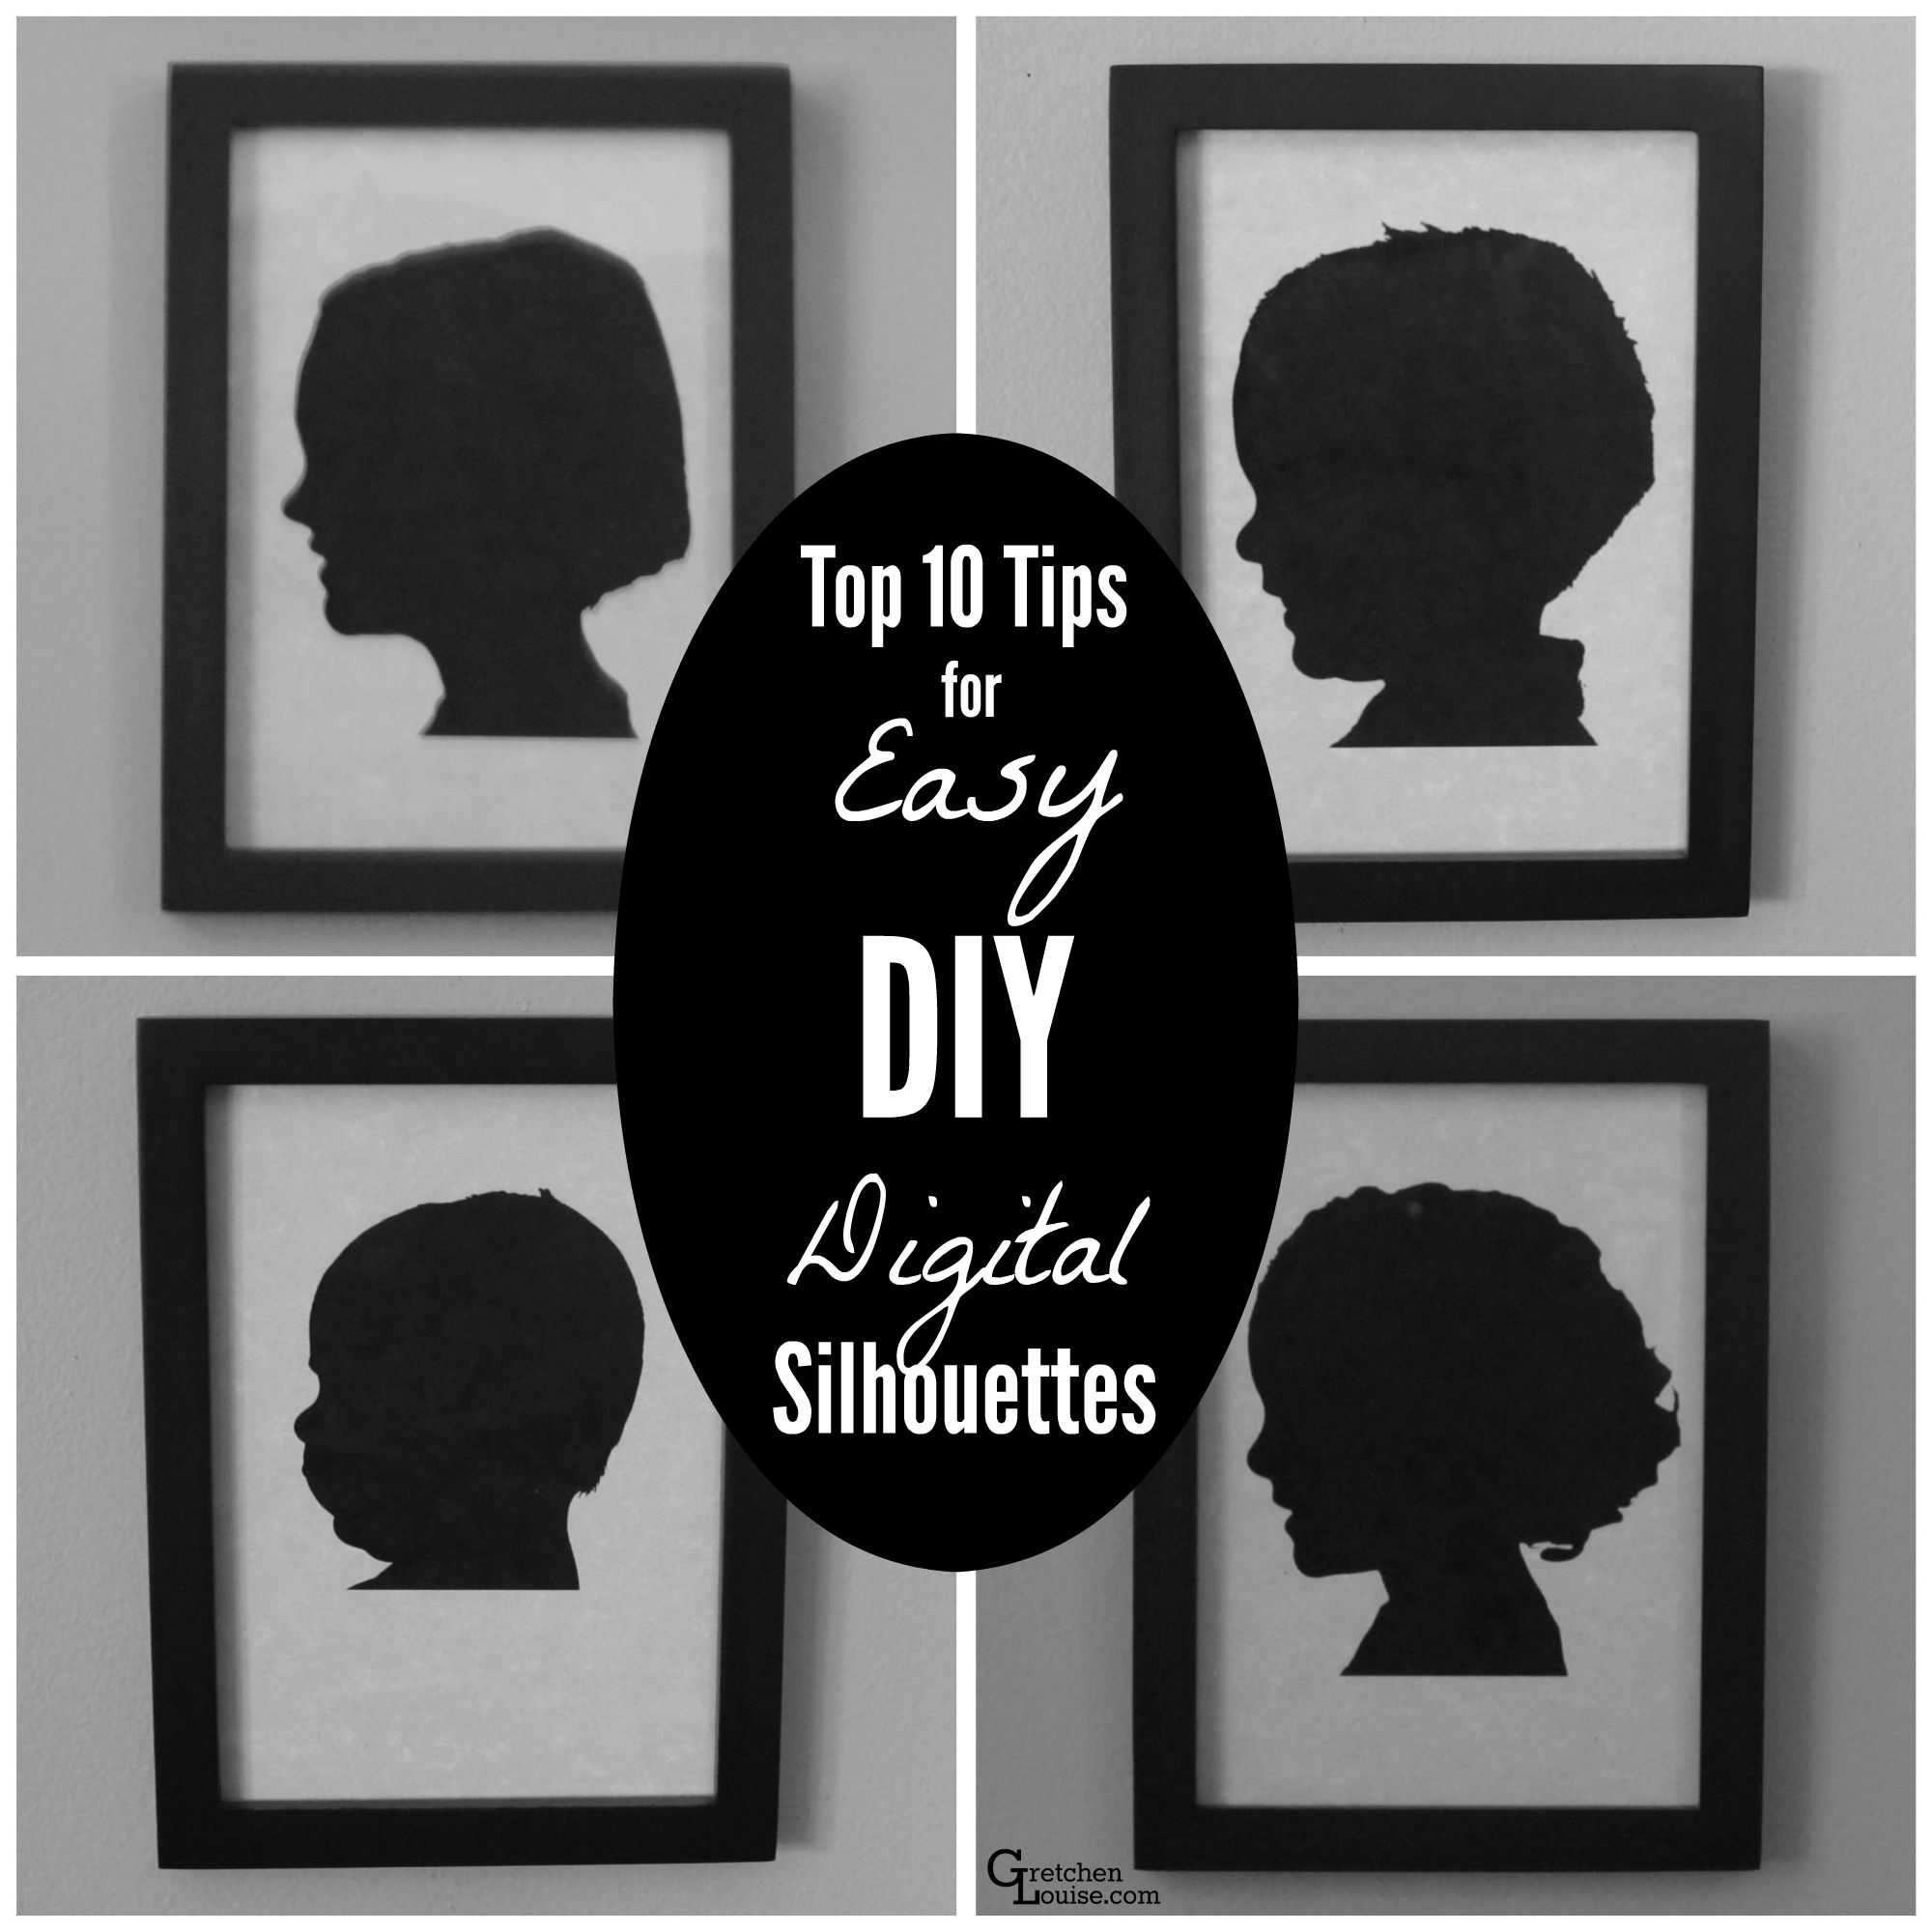 Top Ten Tips for Super Simple Silhouettes